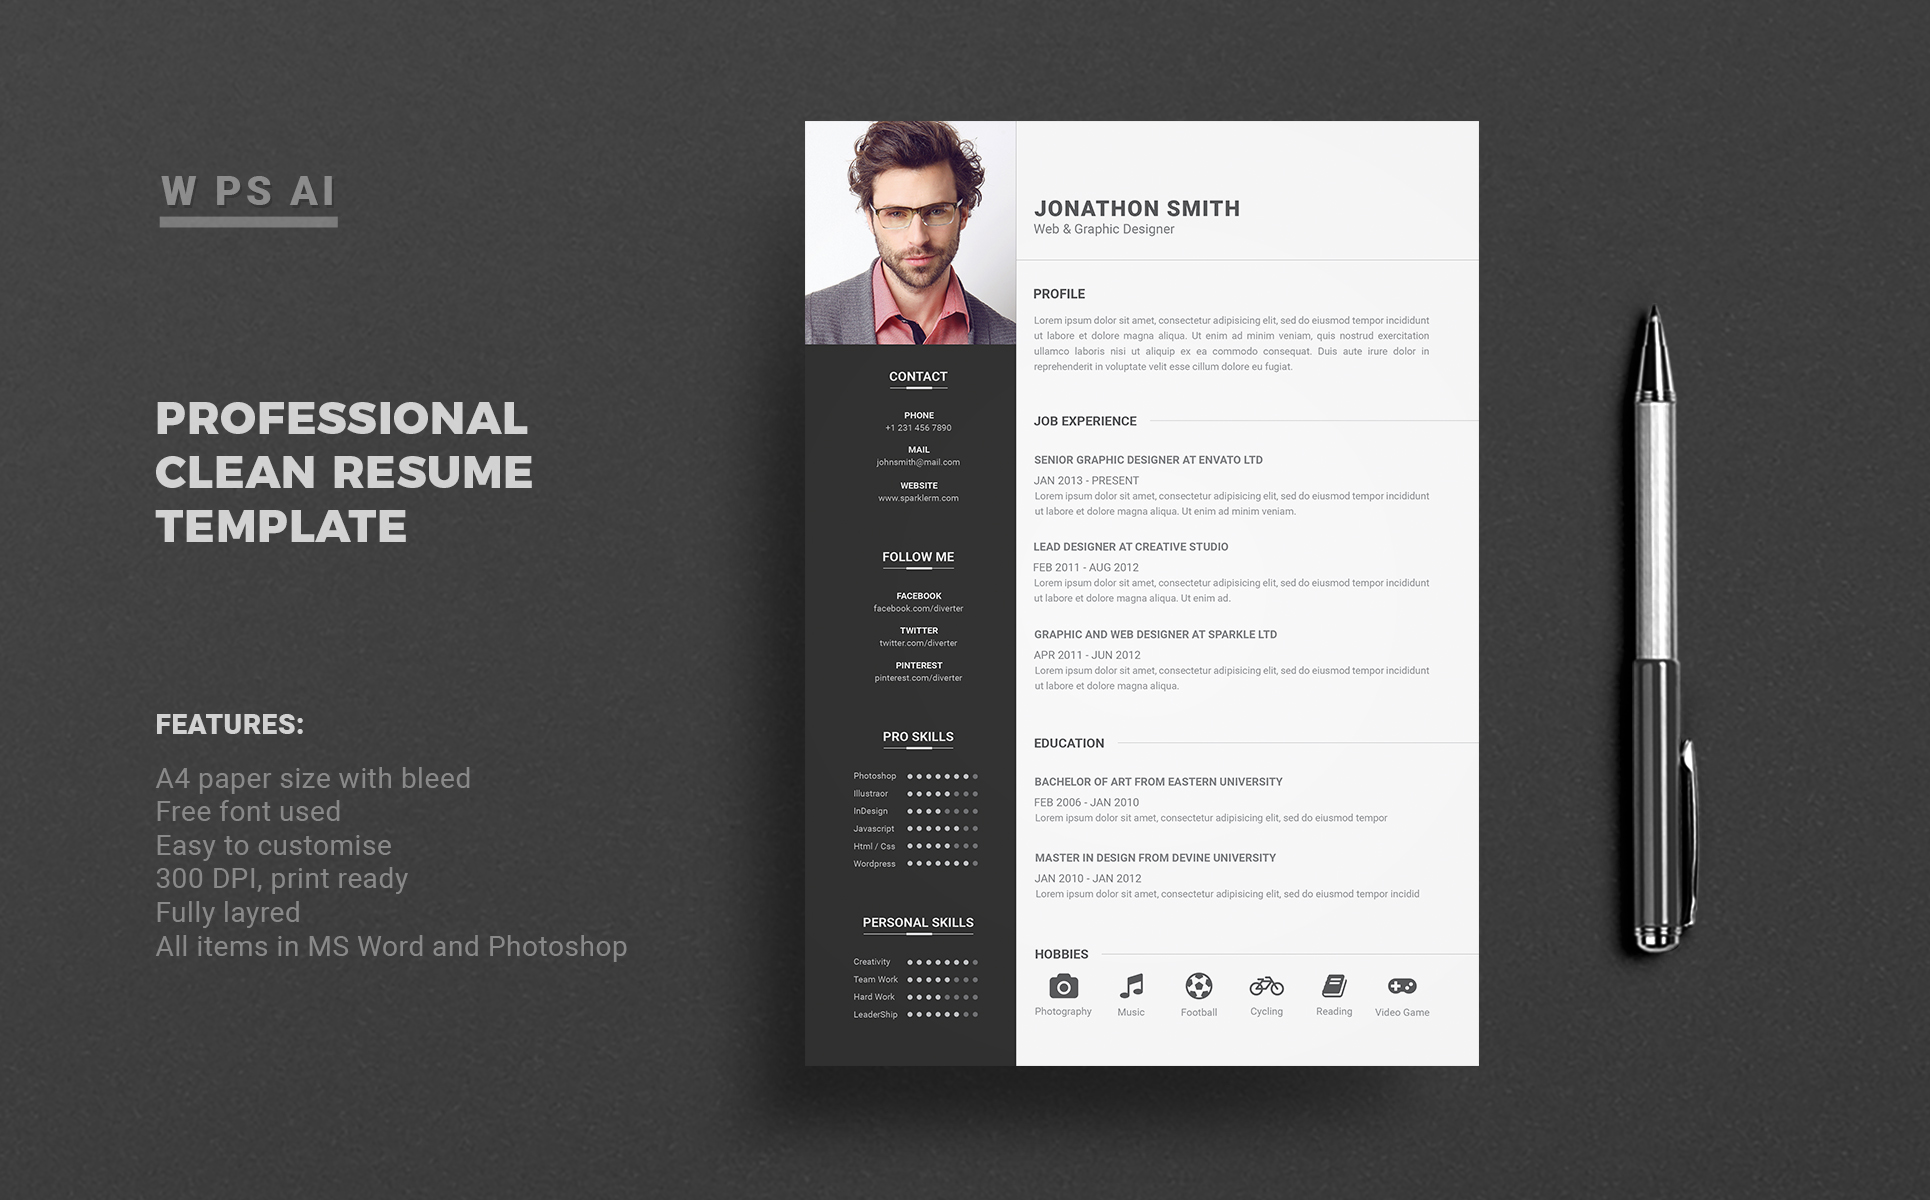 Jonathan Smith Resume Template 65429